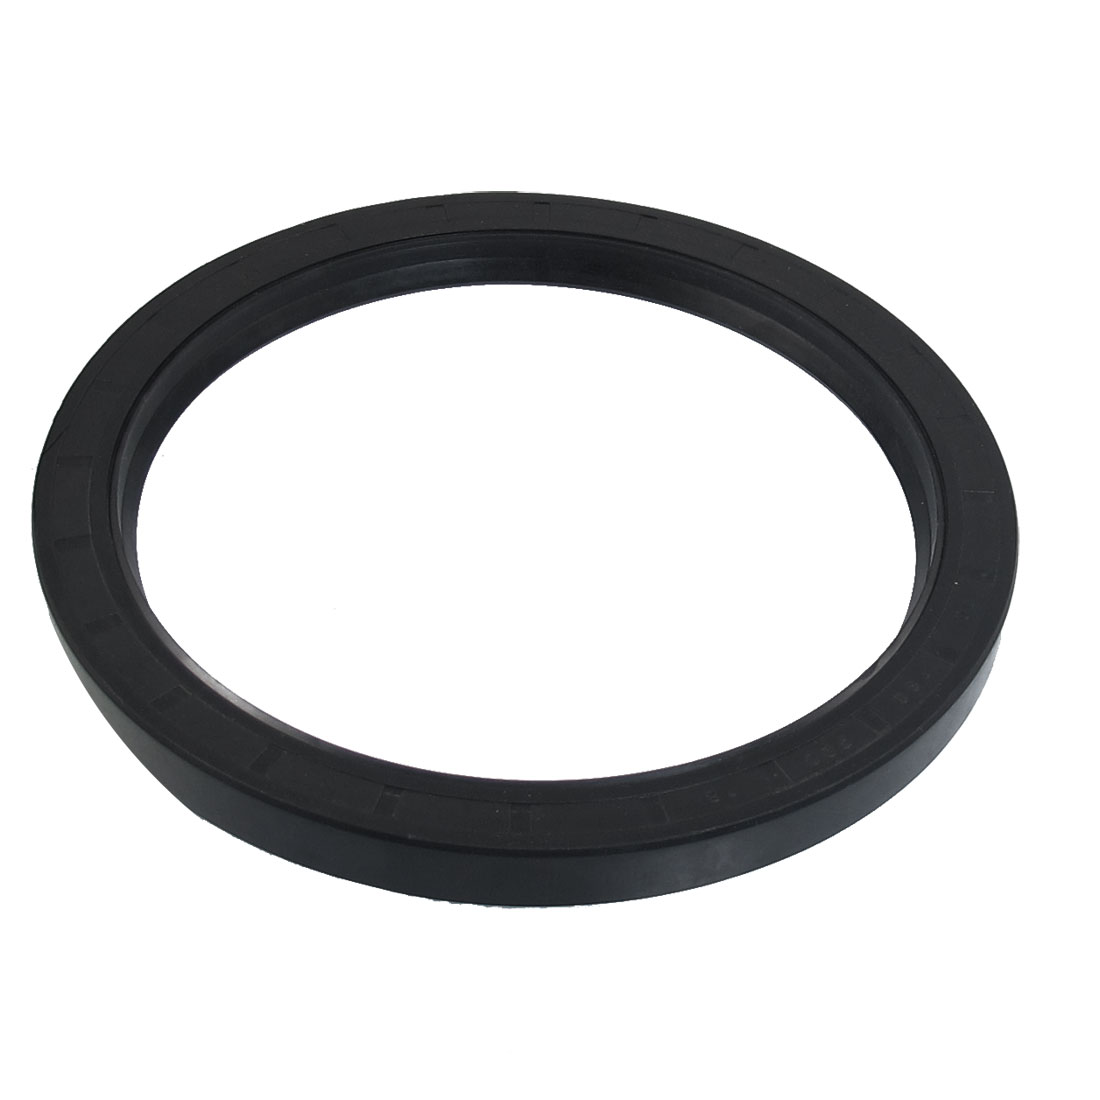 Black Nitrile Rubber Dual Lips Oil Shaft Seal TC 180mm x 220mm x 18mm